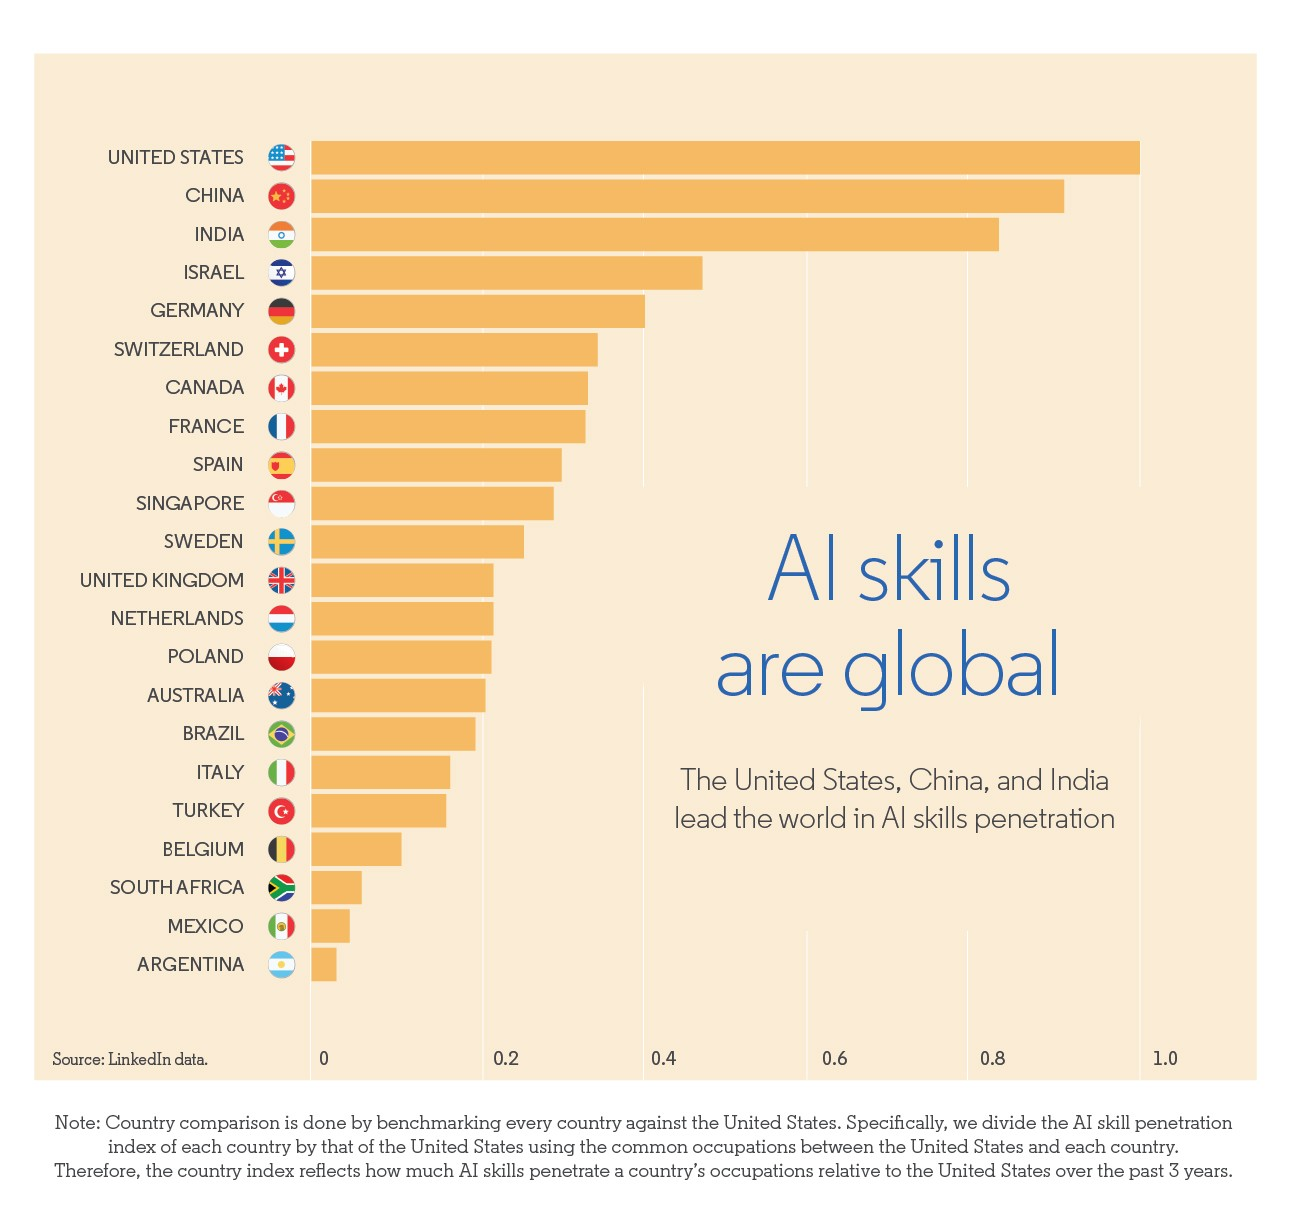 AI skills are global